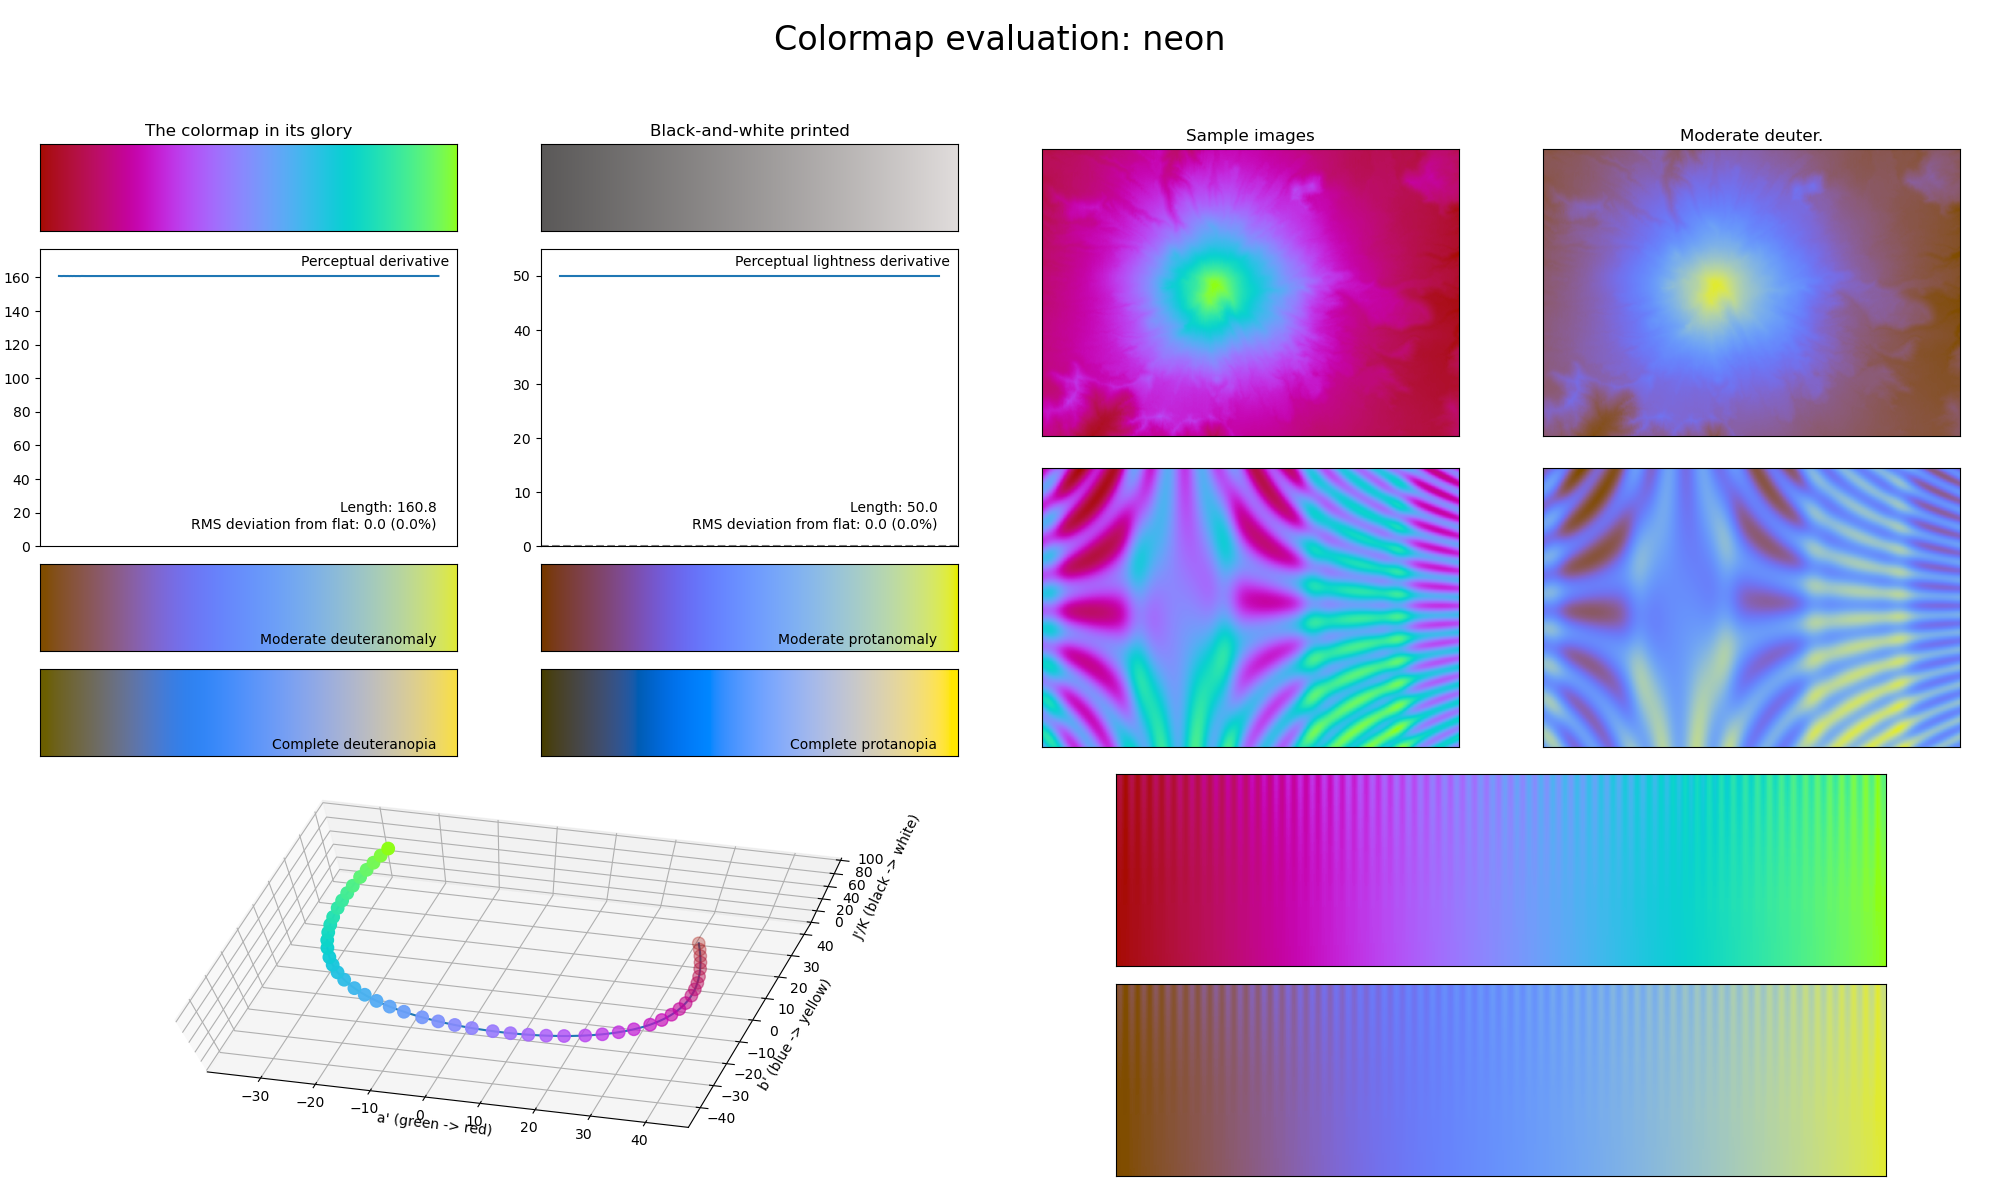 Statistics of the *neon* colormap.